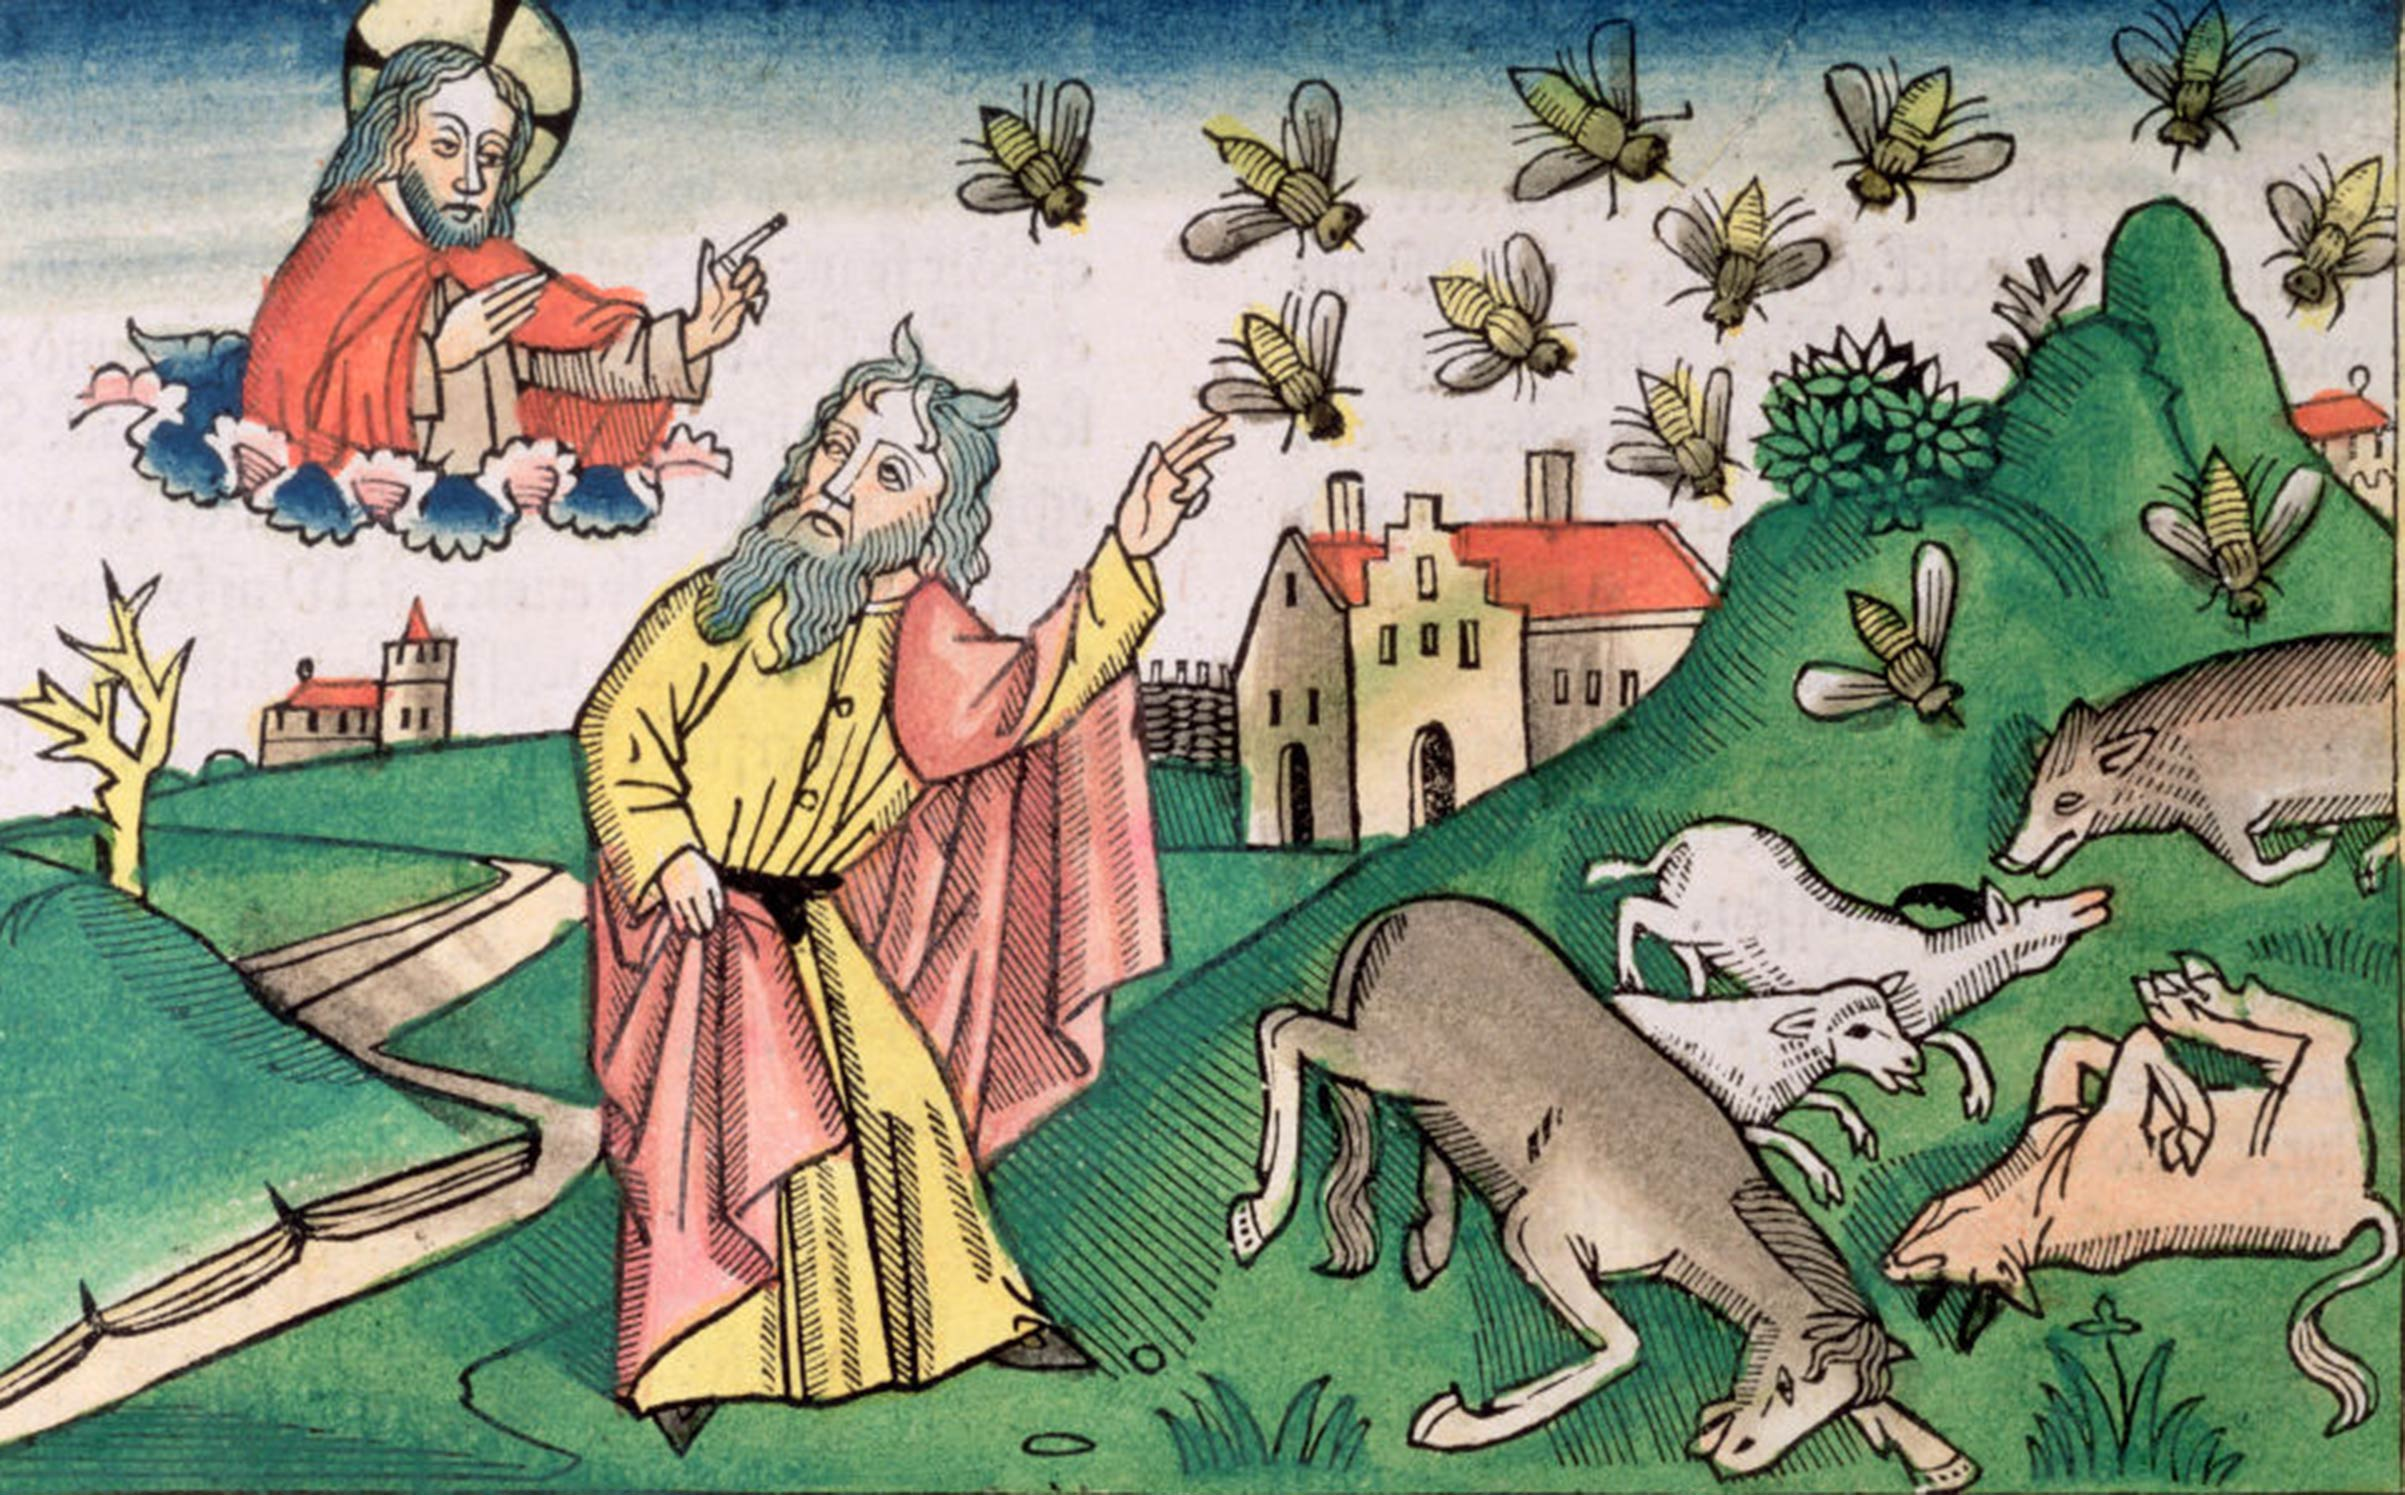 A copy of a 15th century German manuscript depicting the plague of insects.